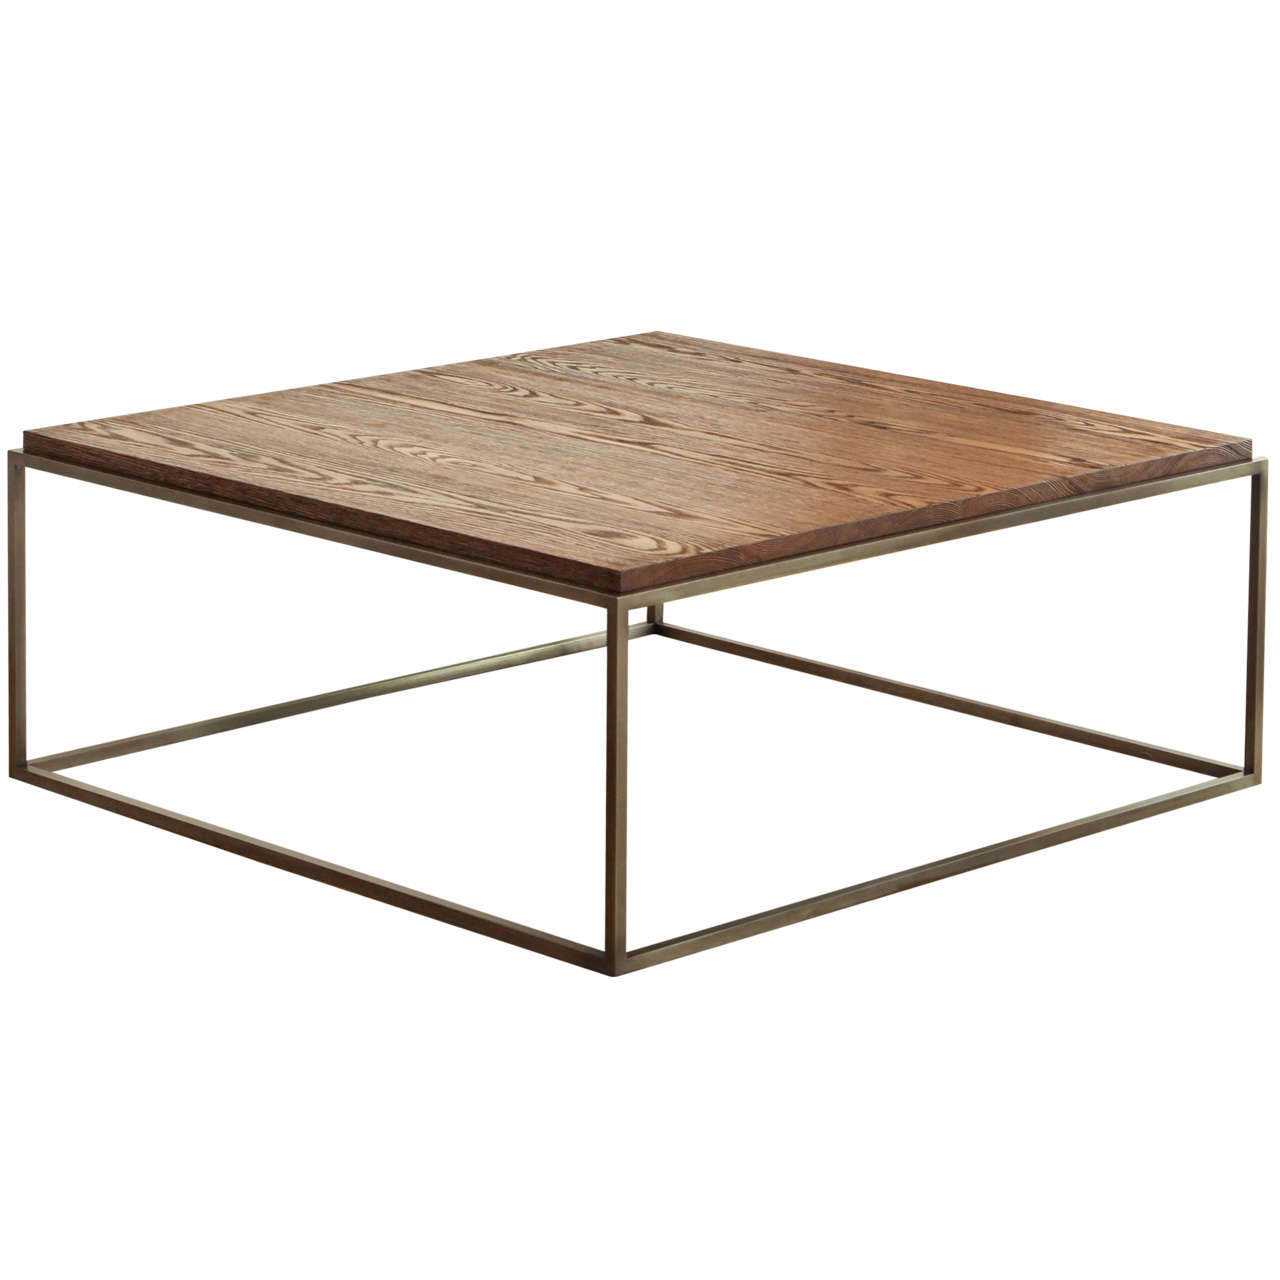 Made To Order Distressed Oak Wood Coffee Table At 1stdibs. Full resolution  photo, nominally Width 1280 Height 1280 pixels, photo with #412C1F.